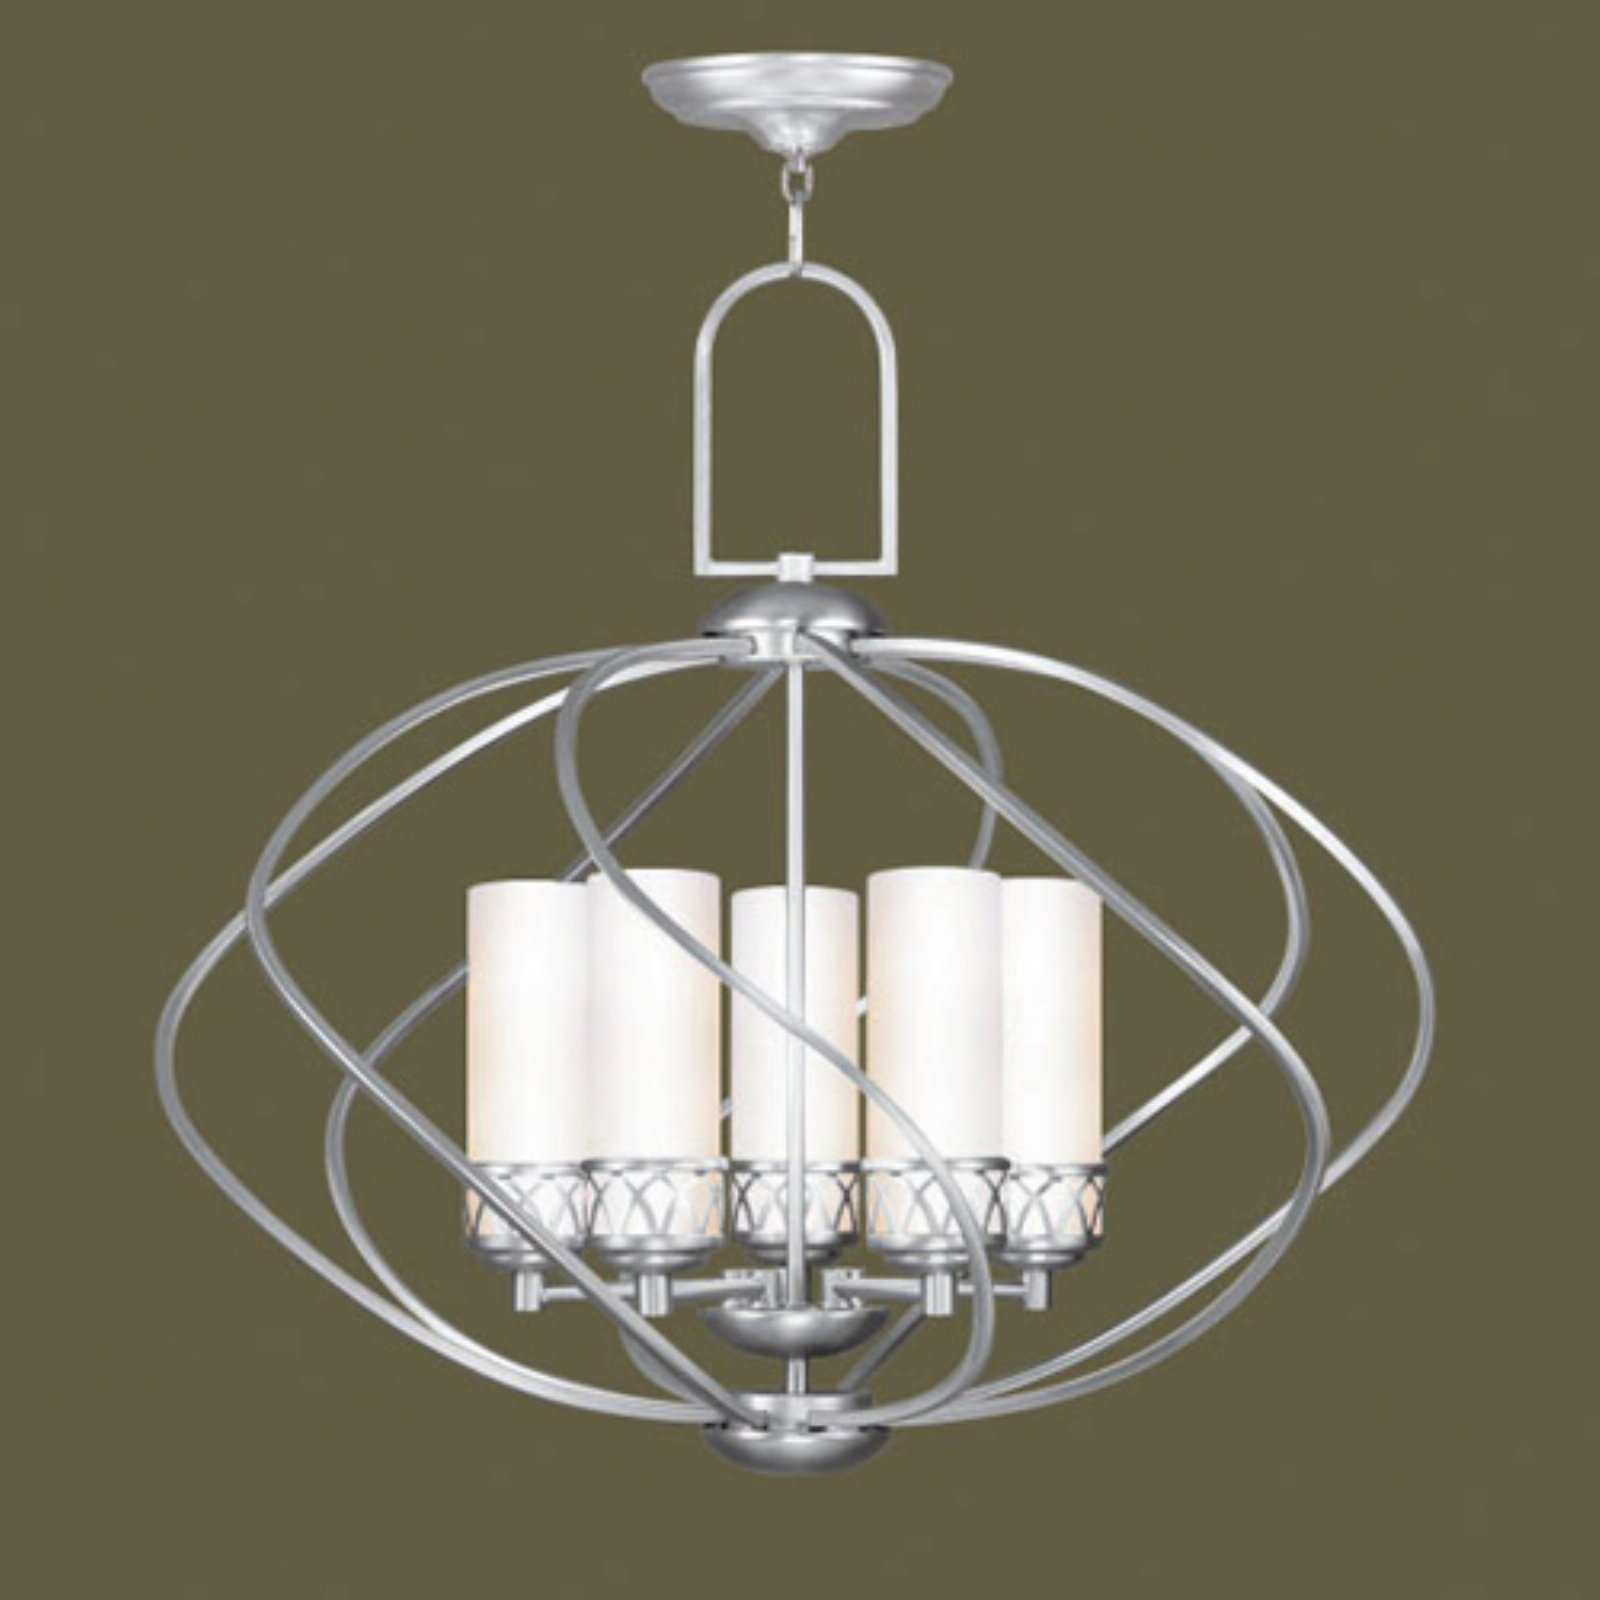 Livex Westfield 4725-91 Chandelier - Brushed Nickel - 26W in.